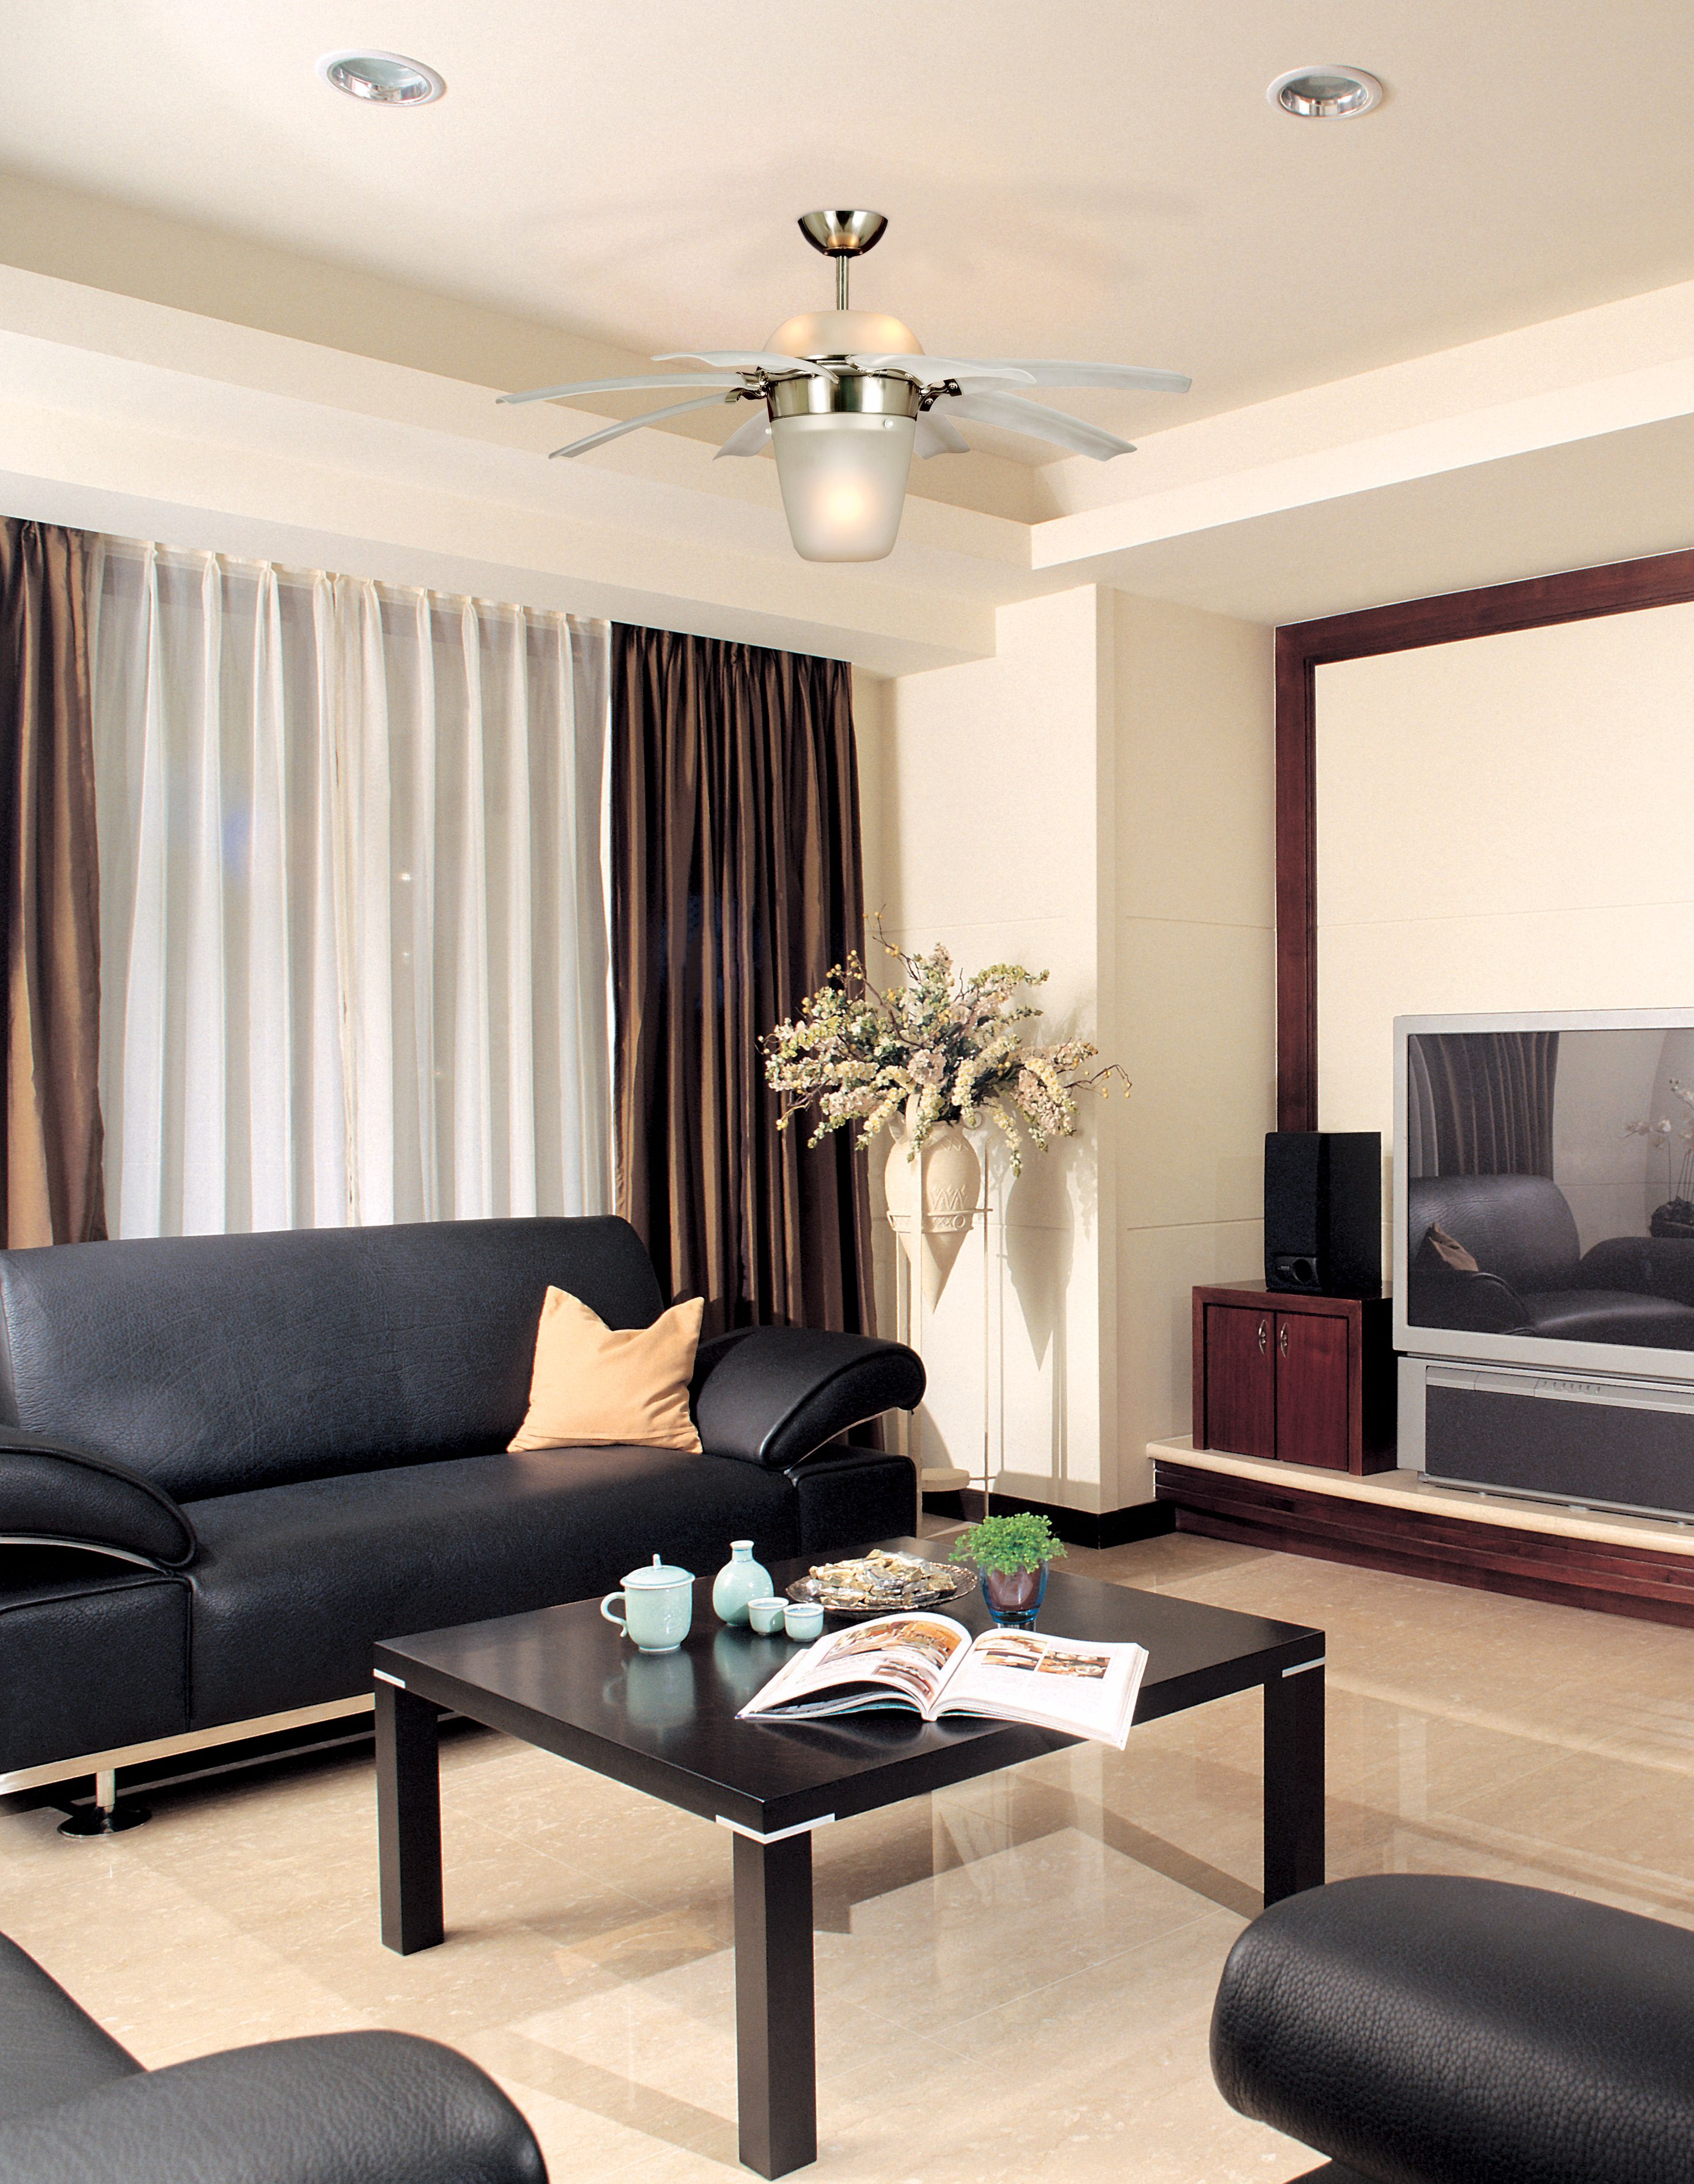 monte carlo airlift ceiling fan in a living room - Monte Carlo Ceiling Fans